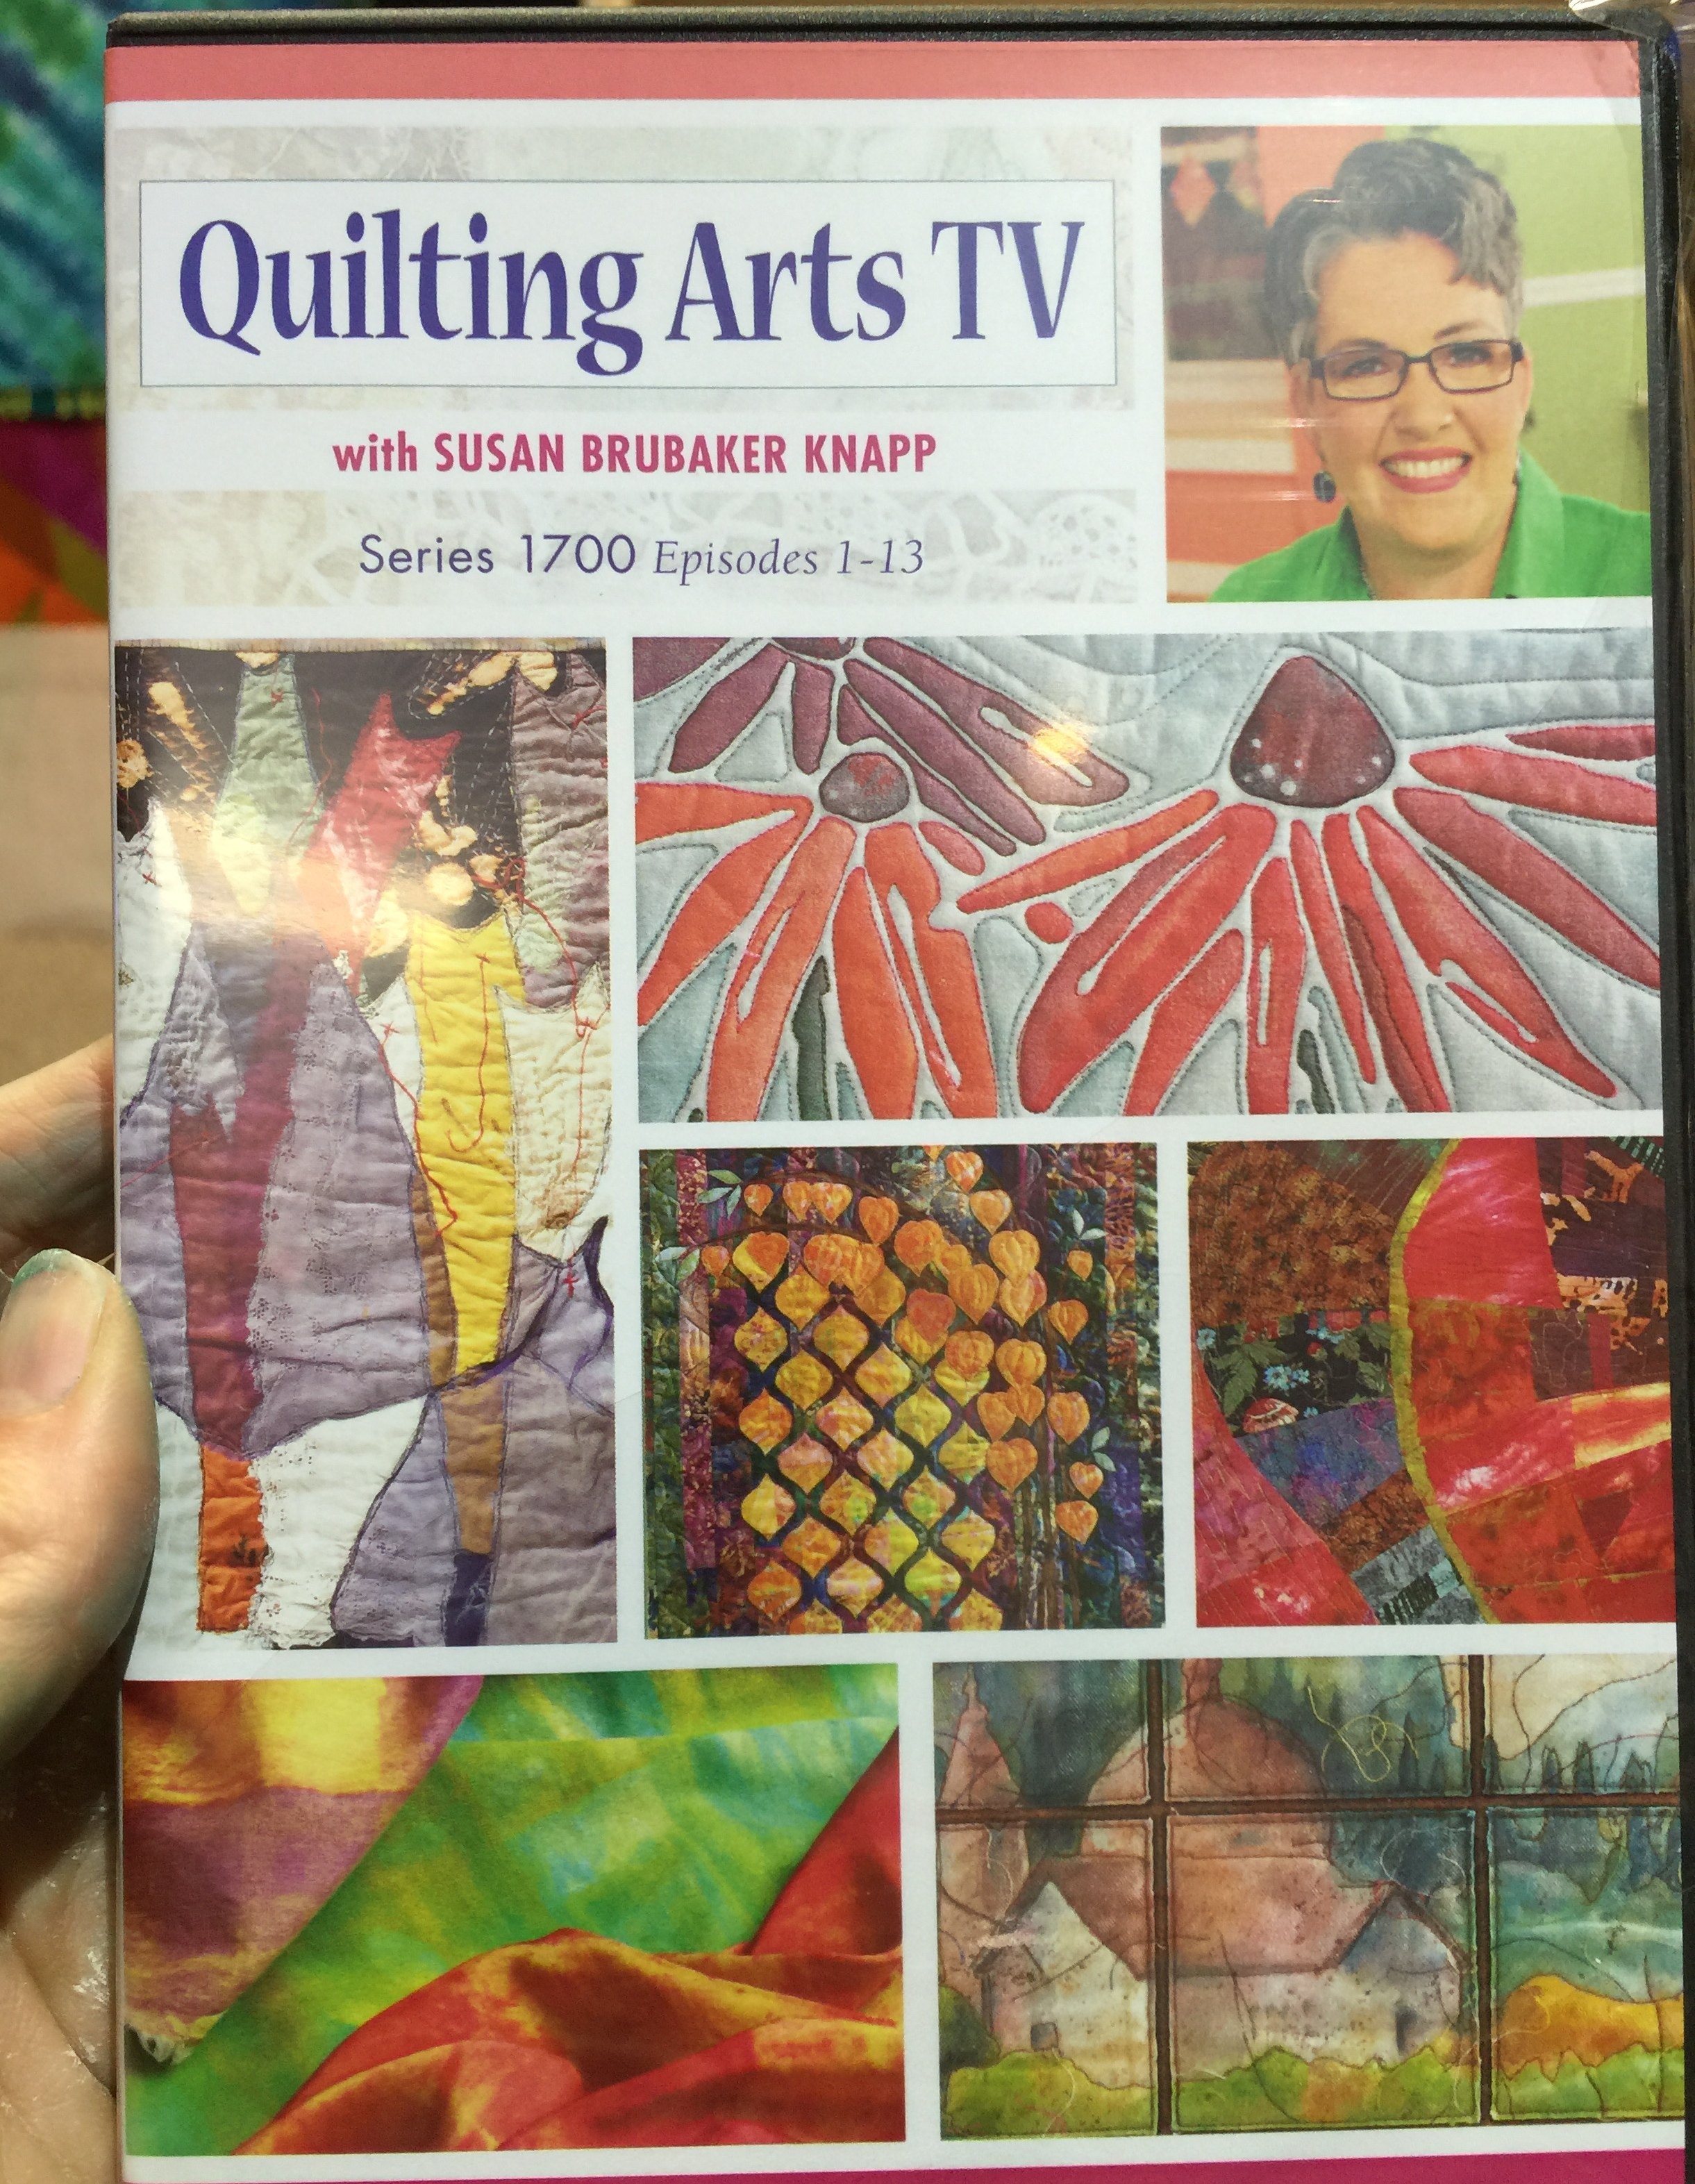 Quilting Arts TV Series 1700 | Frieda Anderson : quilting arts tv series - Adamdwight.com